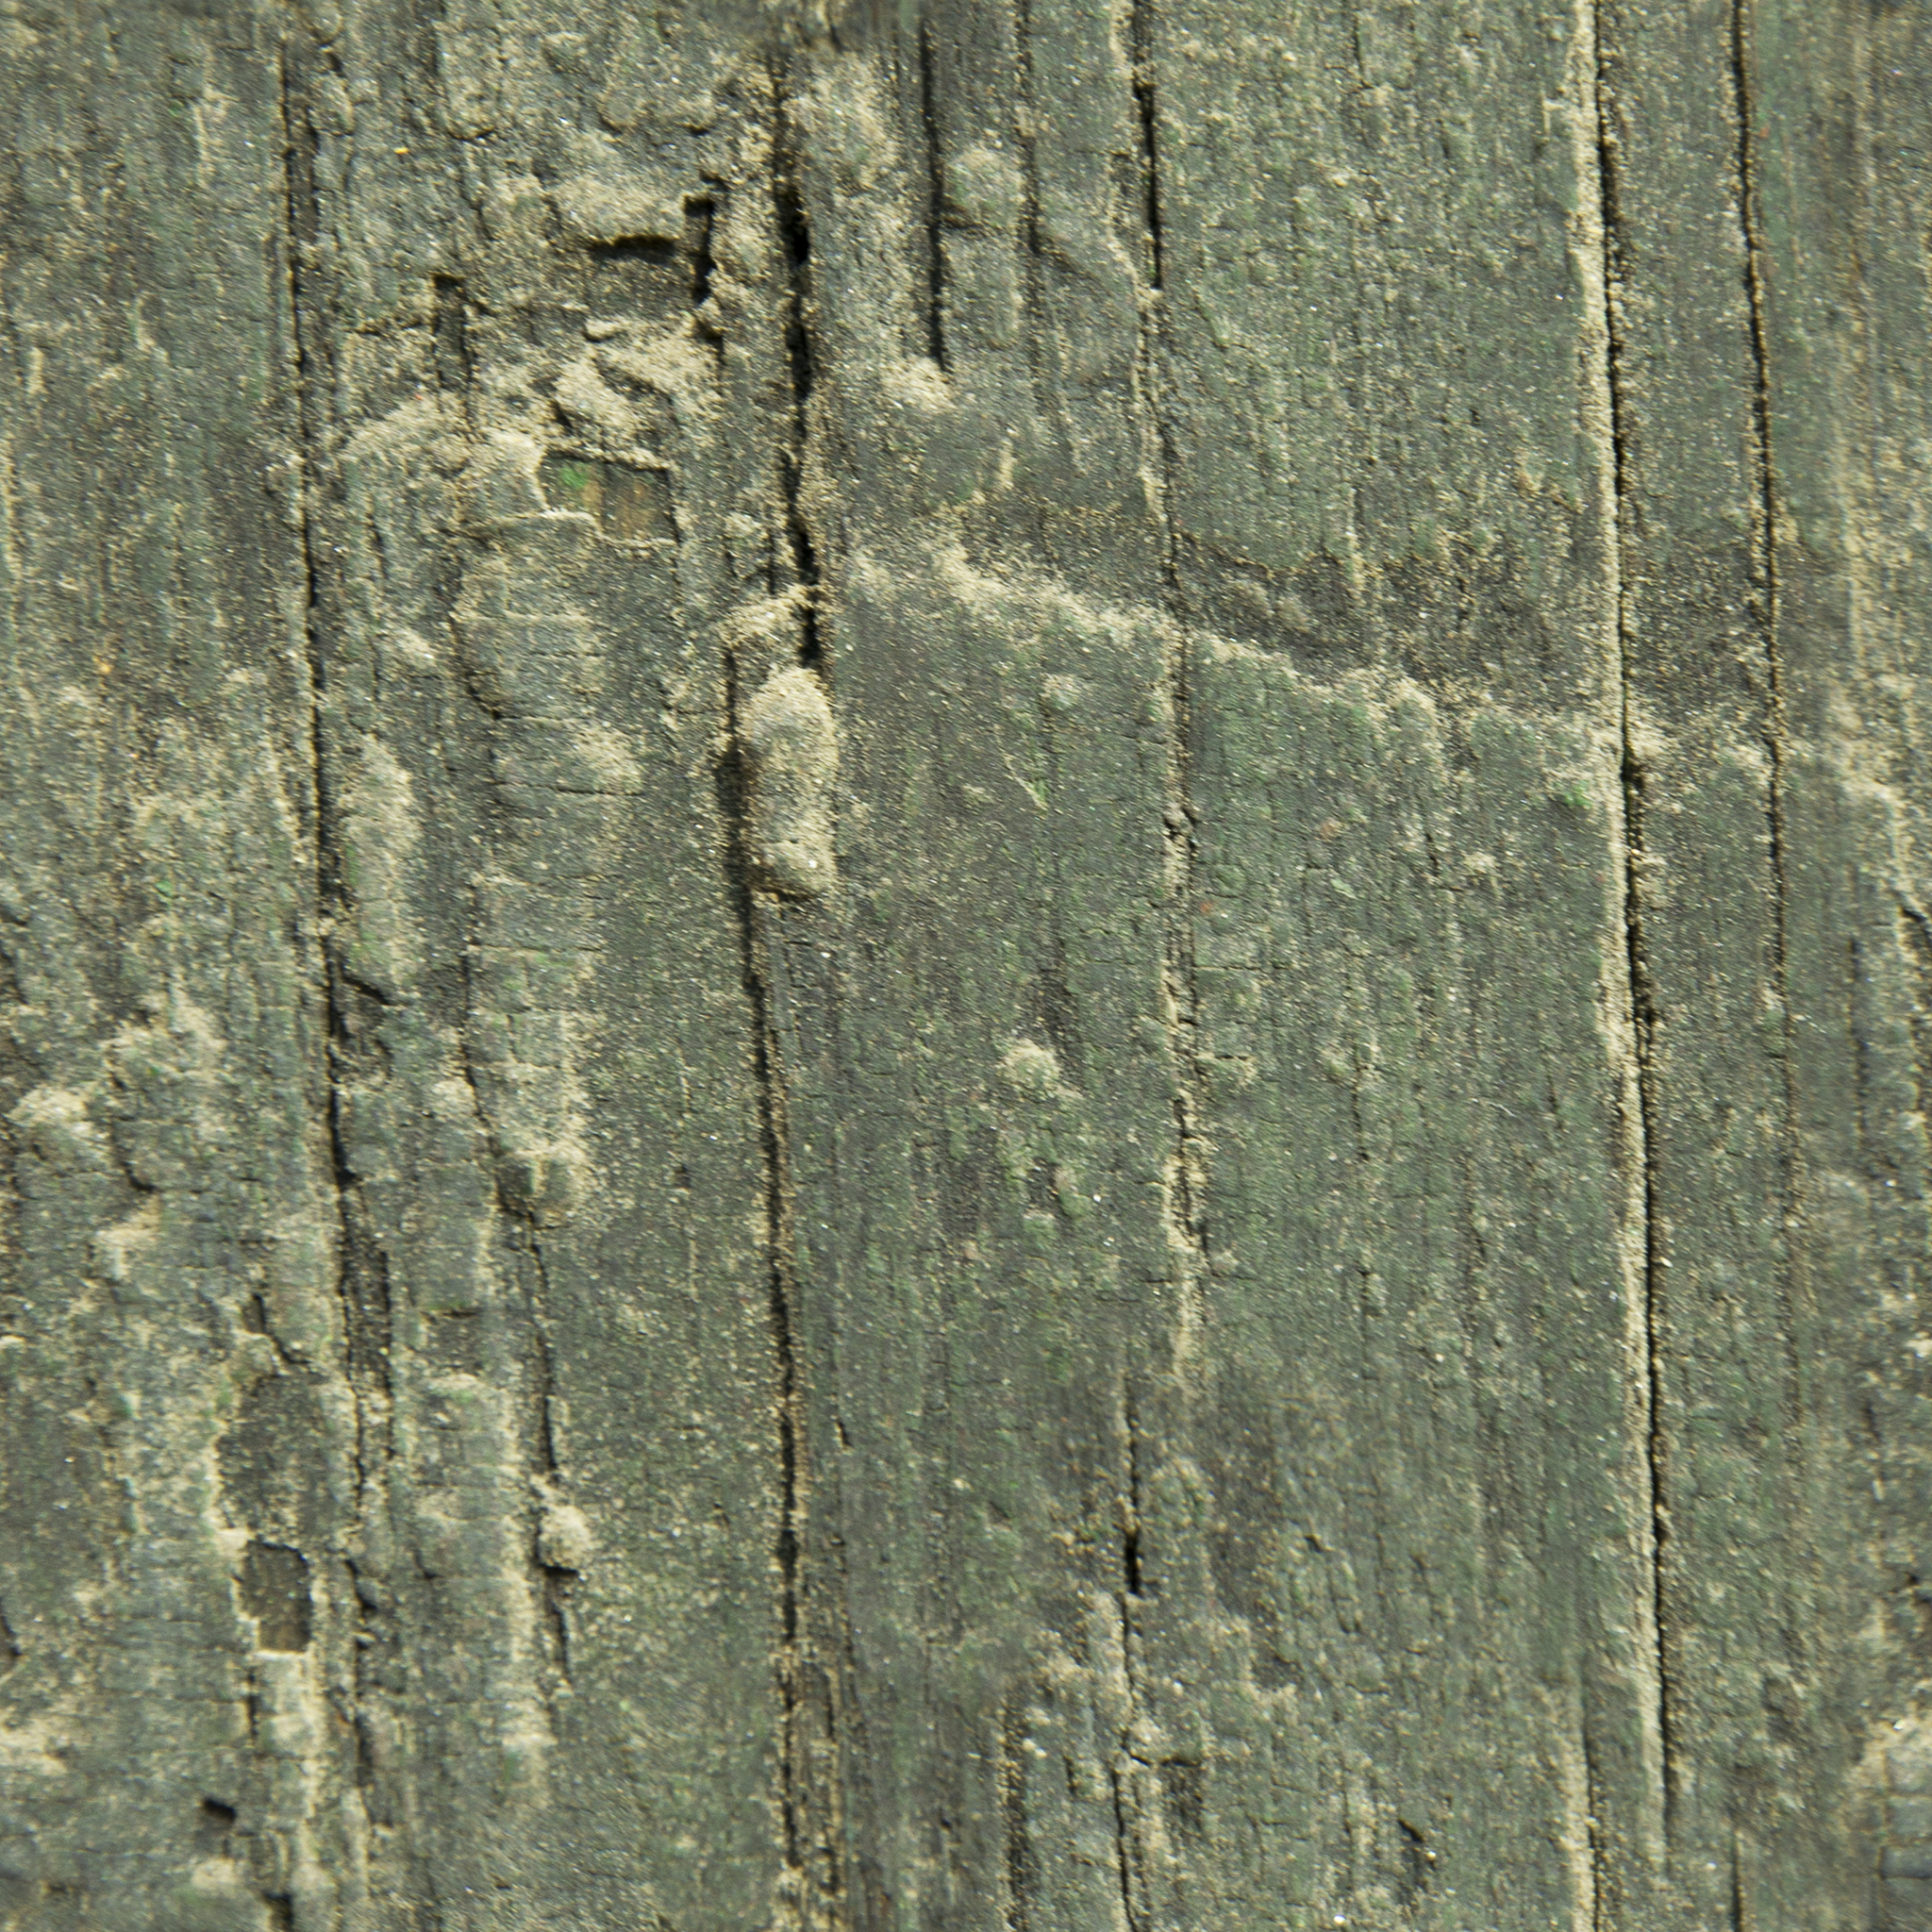 Antiquated Narra Wood.jpg